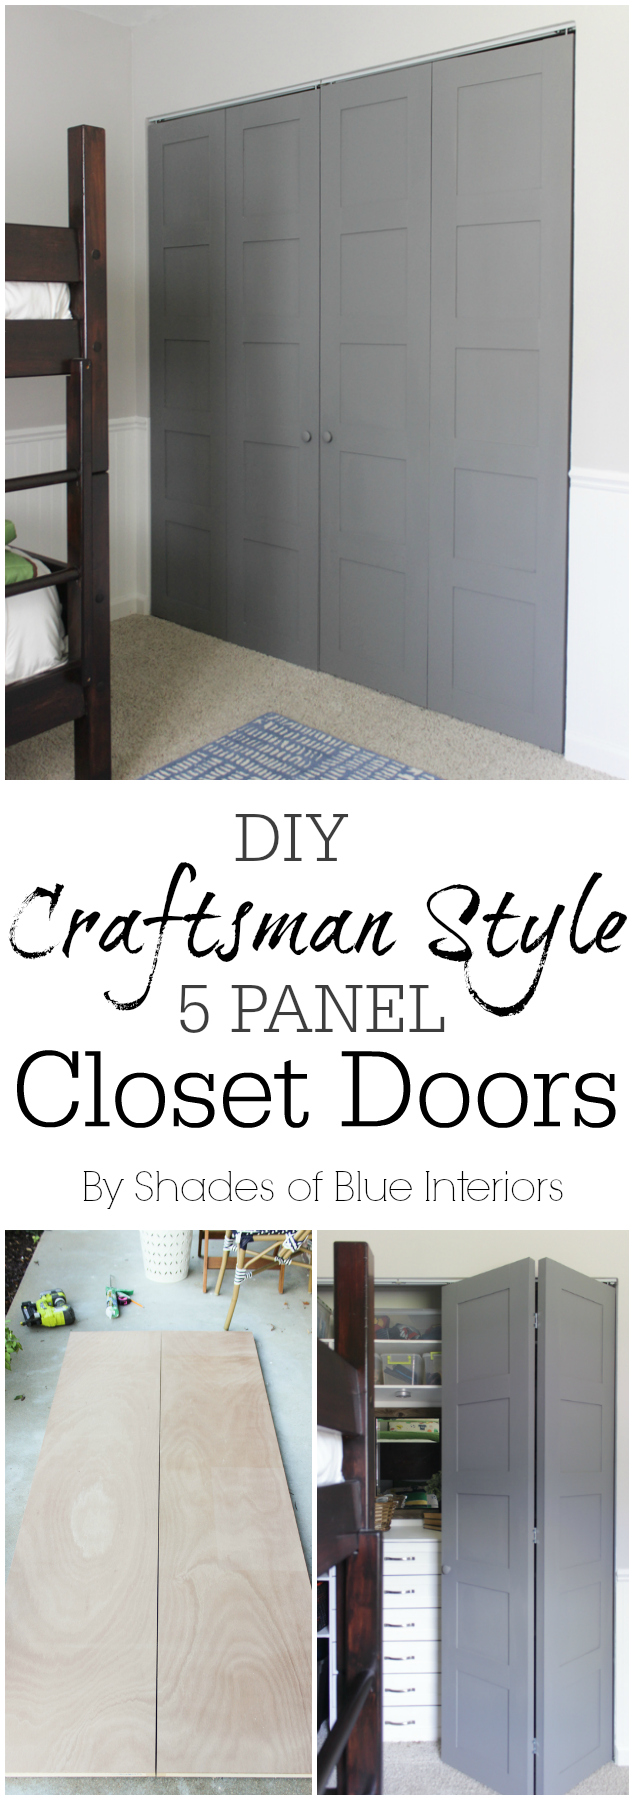 CraftsmanStyleClosetDoors